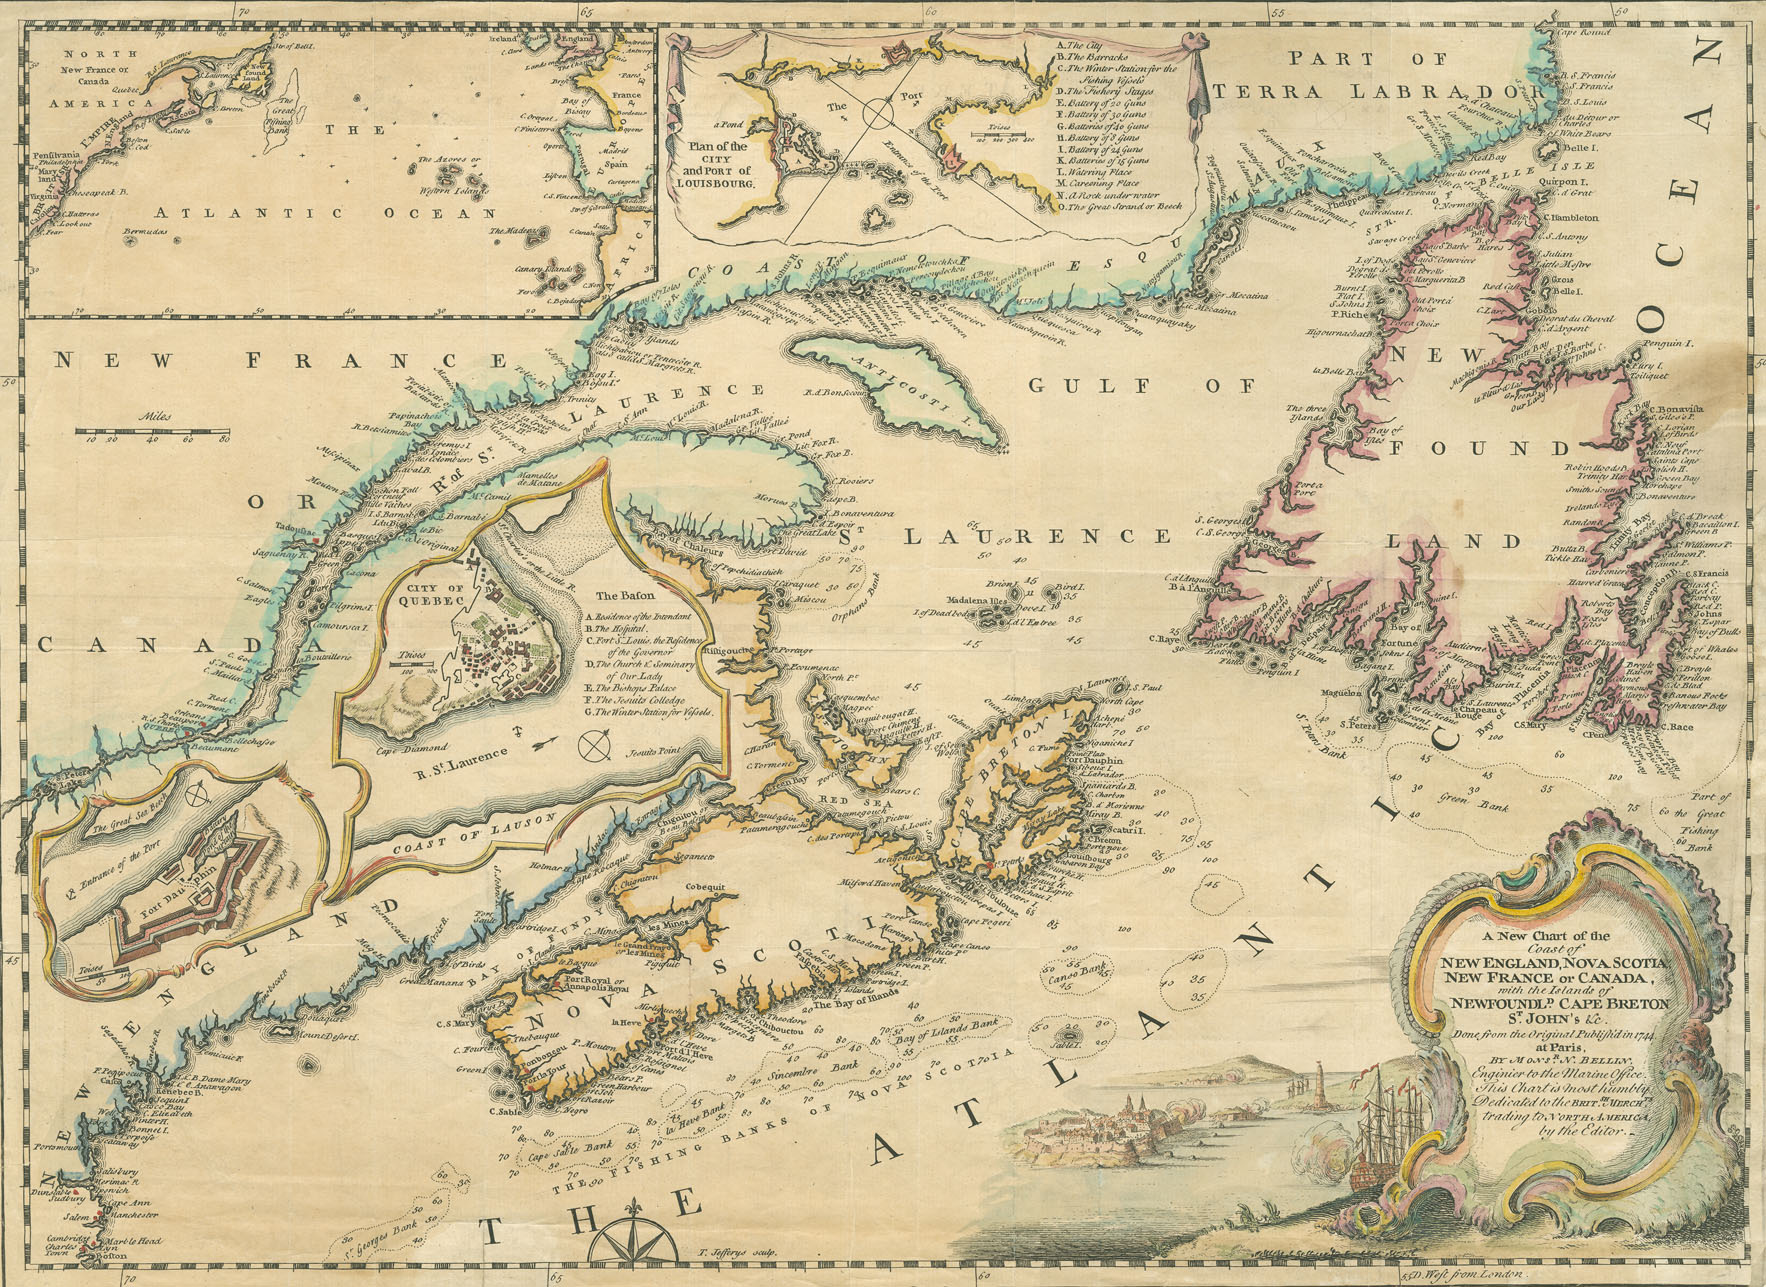 Nova Scotia Archives - Historical Maps of Nova Scotia on old mexico map, vintage canada, old map switzerland, abbotsford canada, old world map, old map europe, old map italy, historical events of canada, trail bc canada, ancient maps of canada, snowshoeing canada, old ads for tourism canada, old house canada, historical maps of canada, street map montreal qc canada, atlas de canada, geographic regions of canada, french canada, old map singapore, brochure of canada,